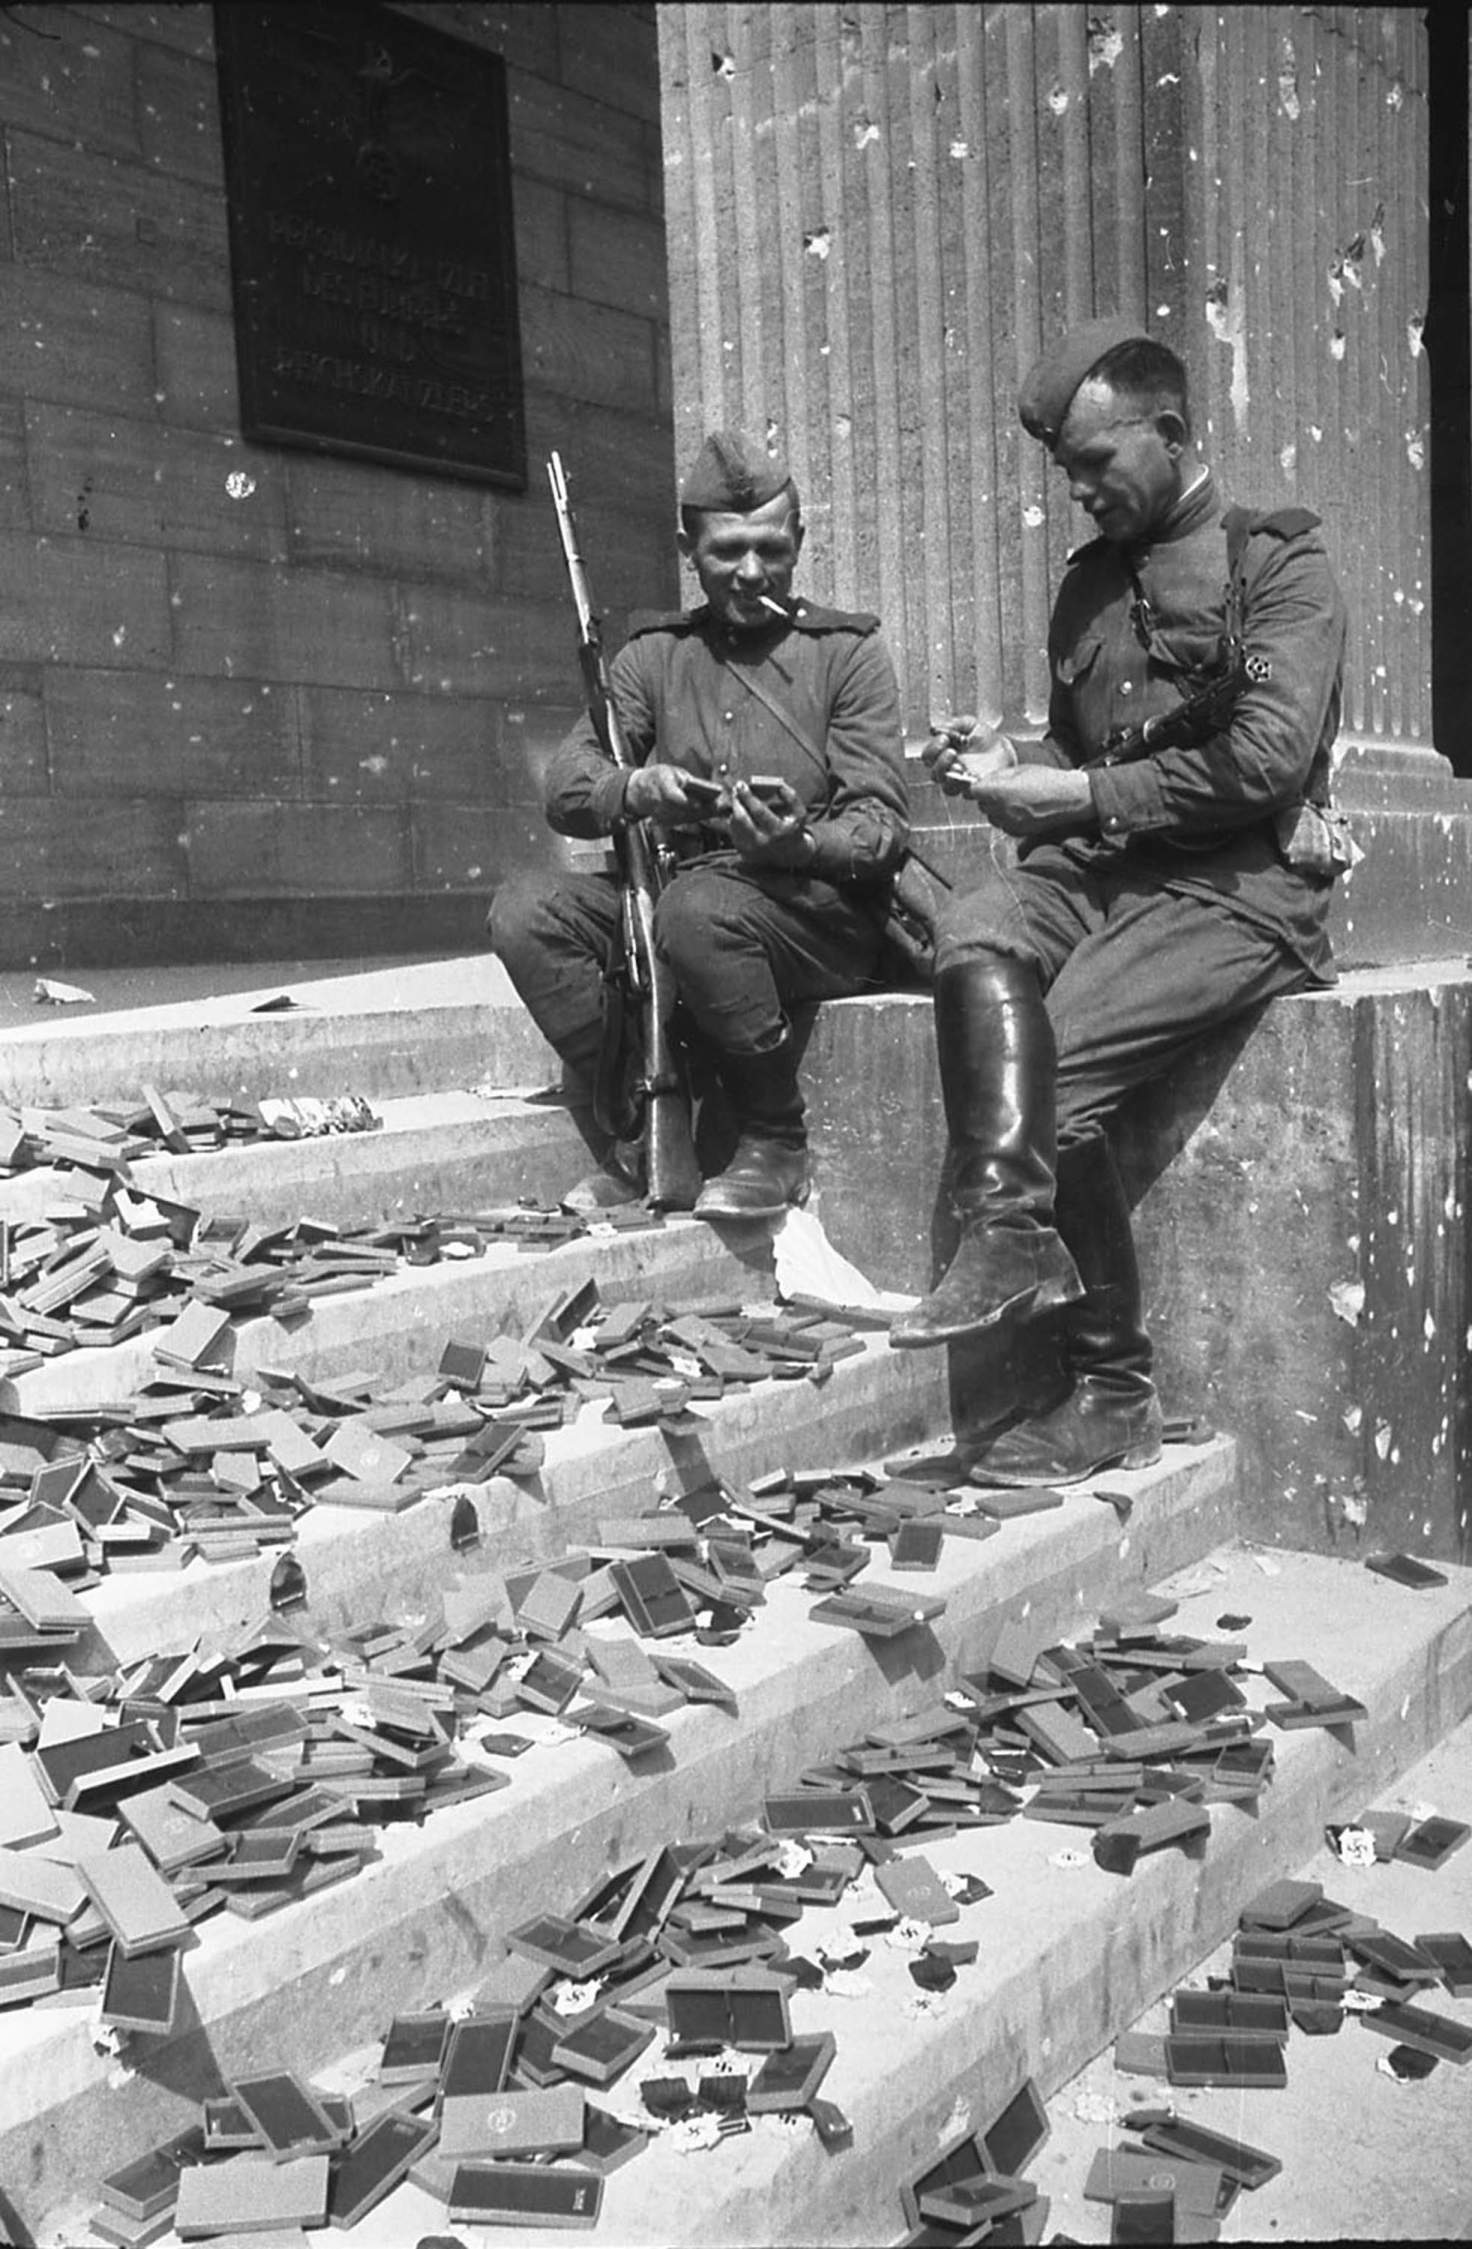 Russian Soldiers on the steps of the Reich Chancellery looking at German medals that would never be awarded, 1945